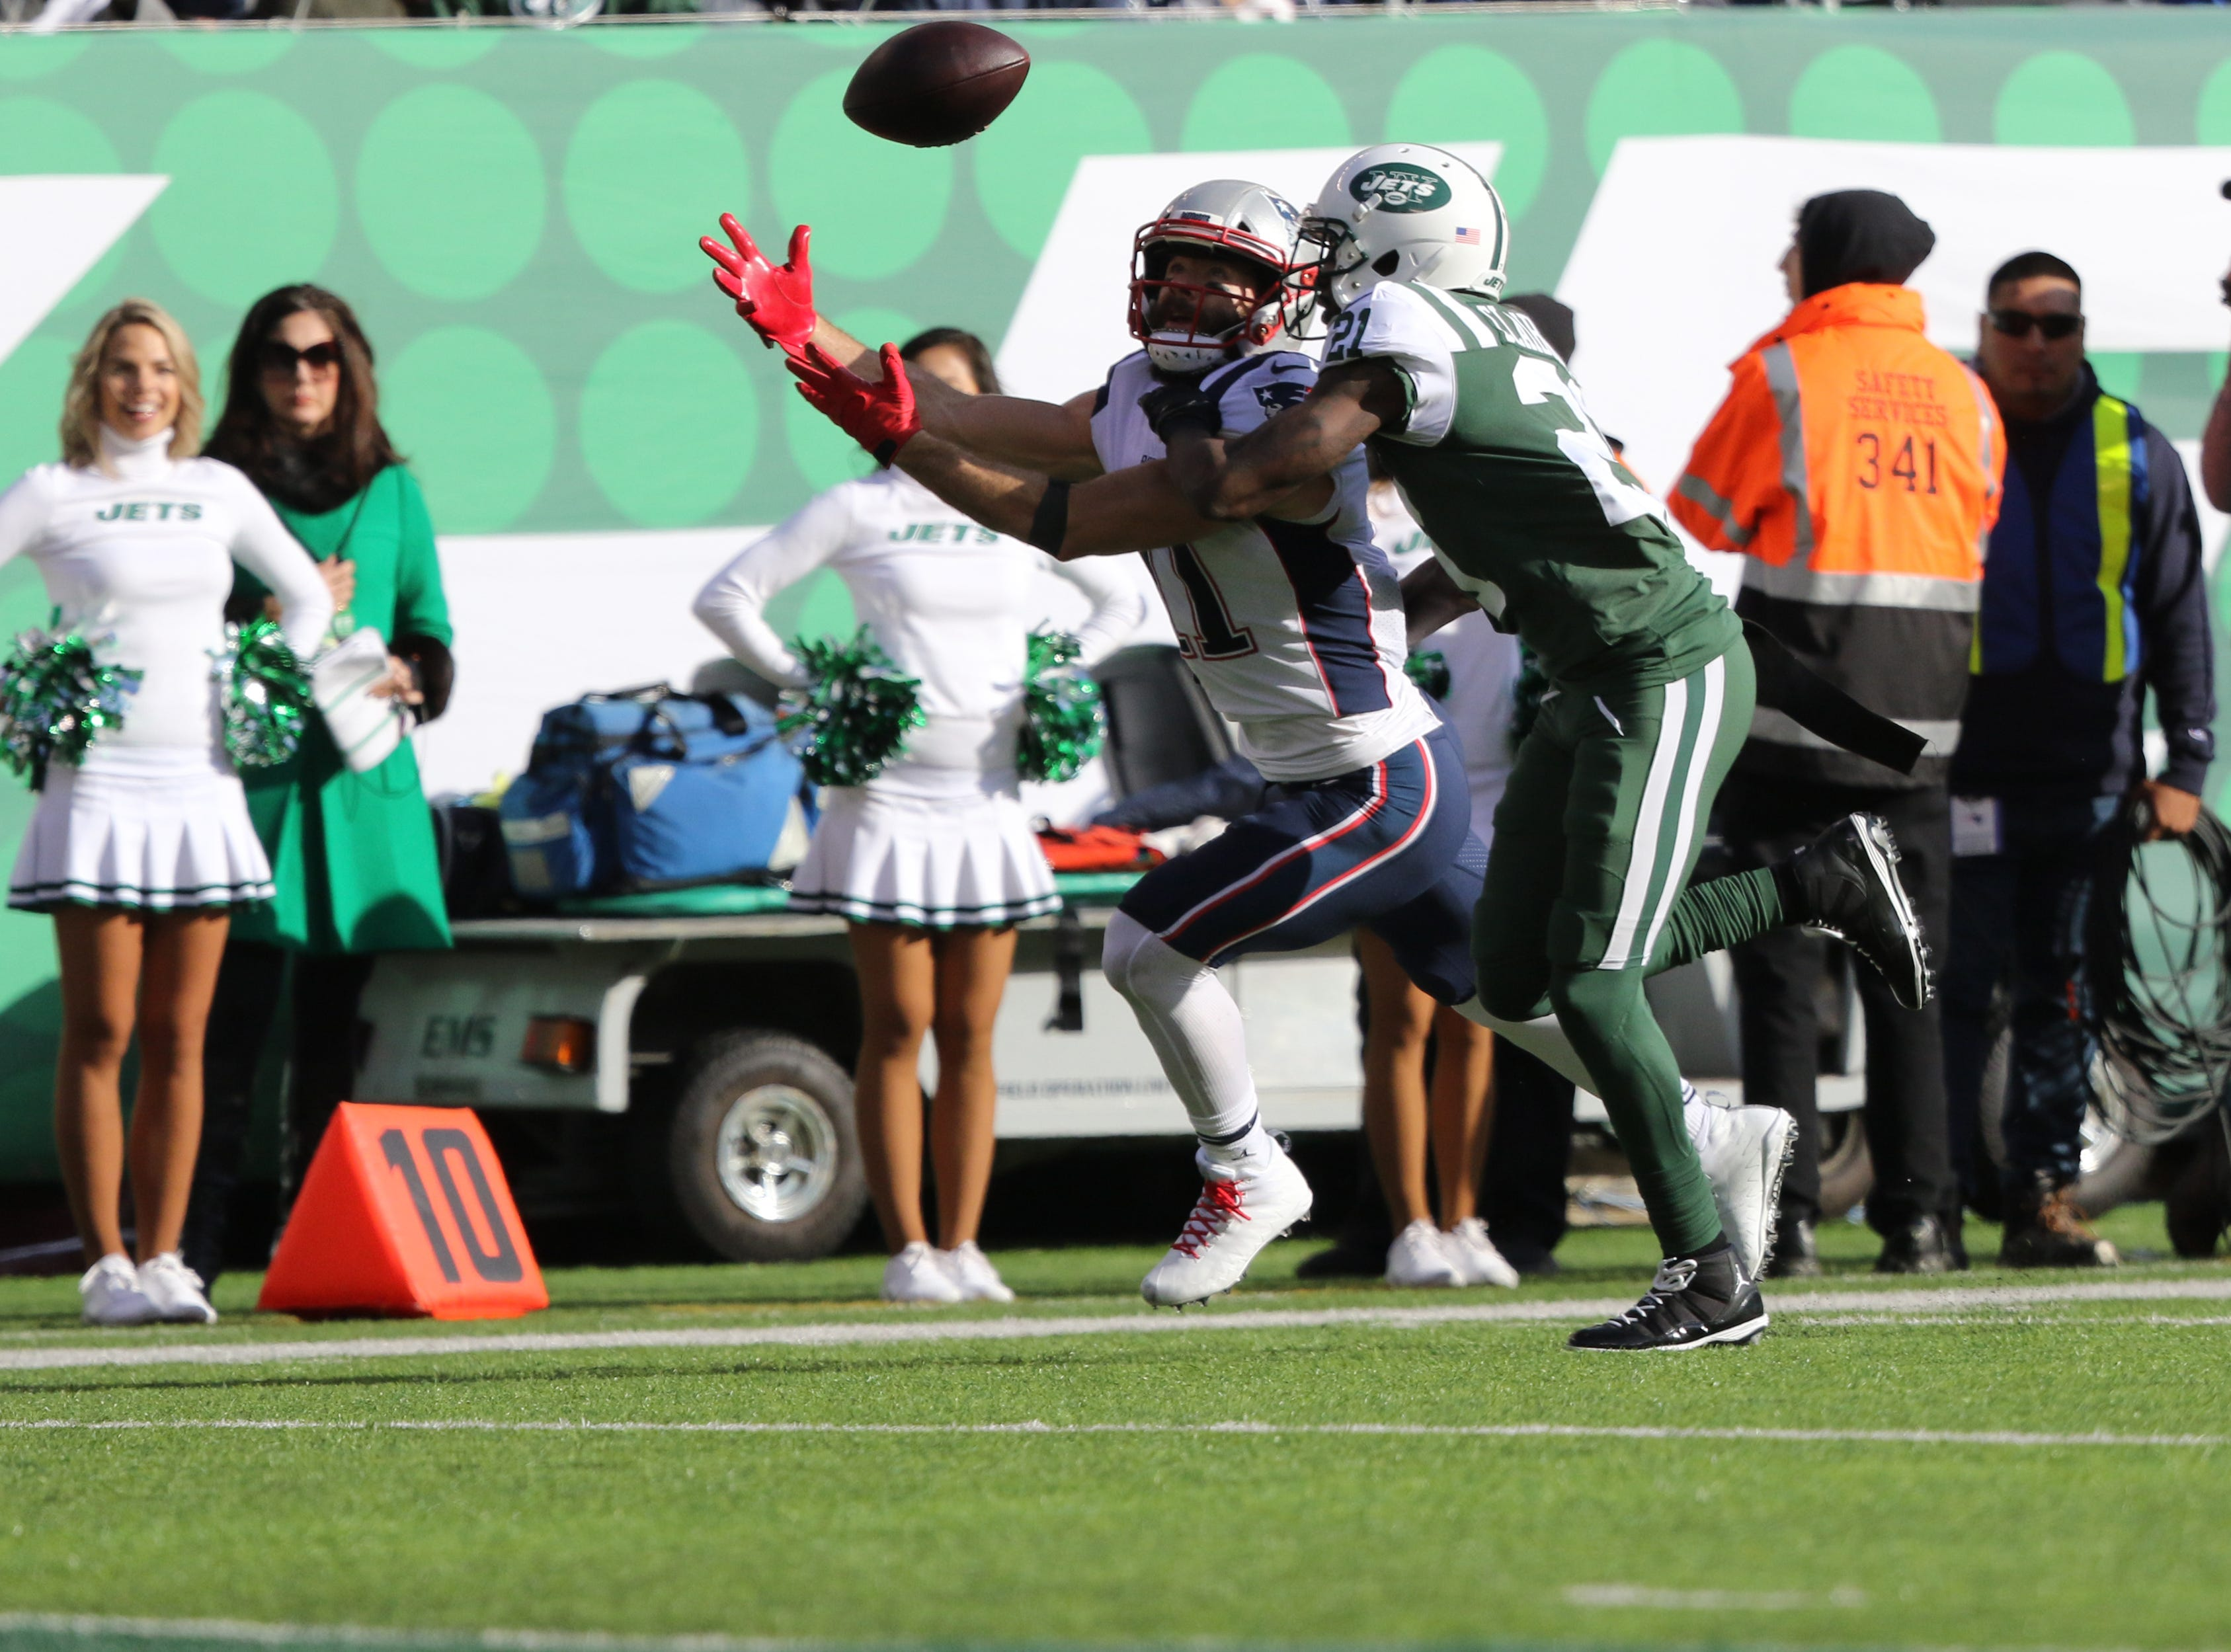 Julian Edelman, of the Patriots, is unable to catch the pass meant for him in the first half as Morris Claiborne, of the Jets, plays tight defense, during the first half. Sunday, November 25, 2018